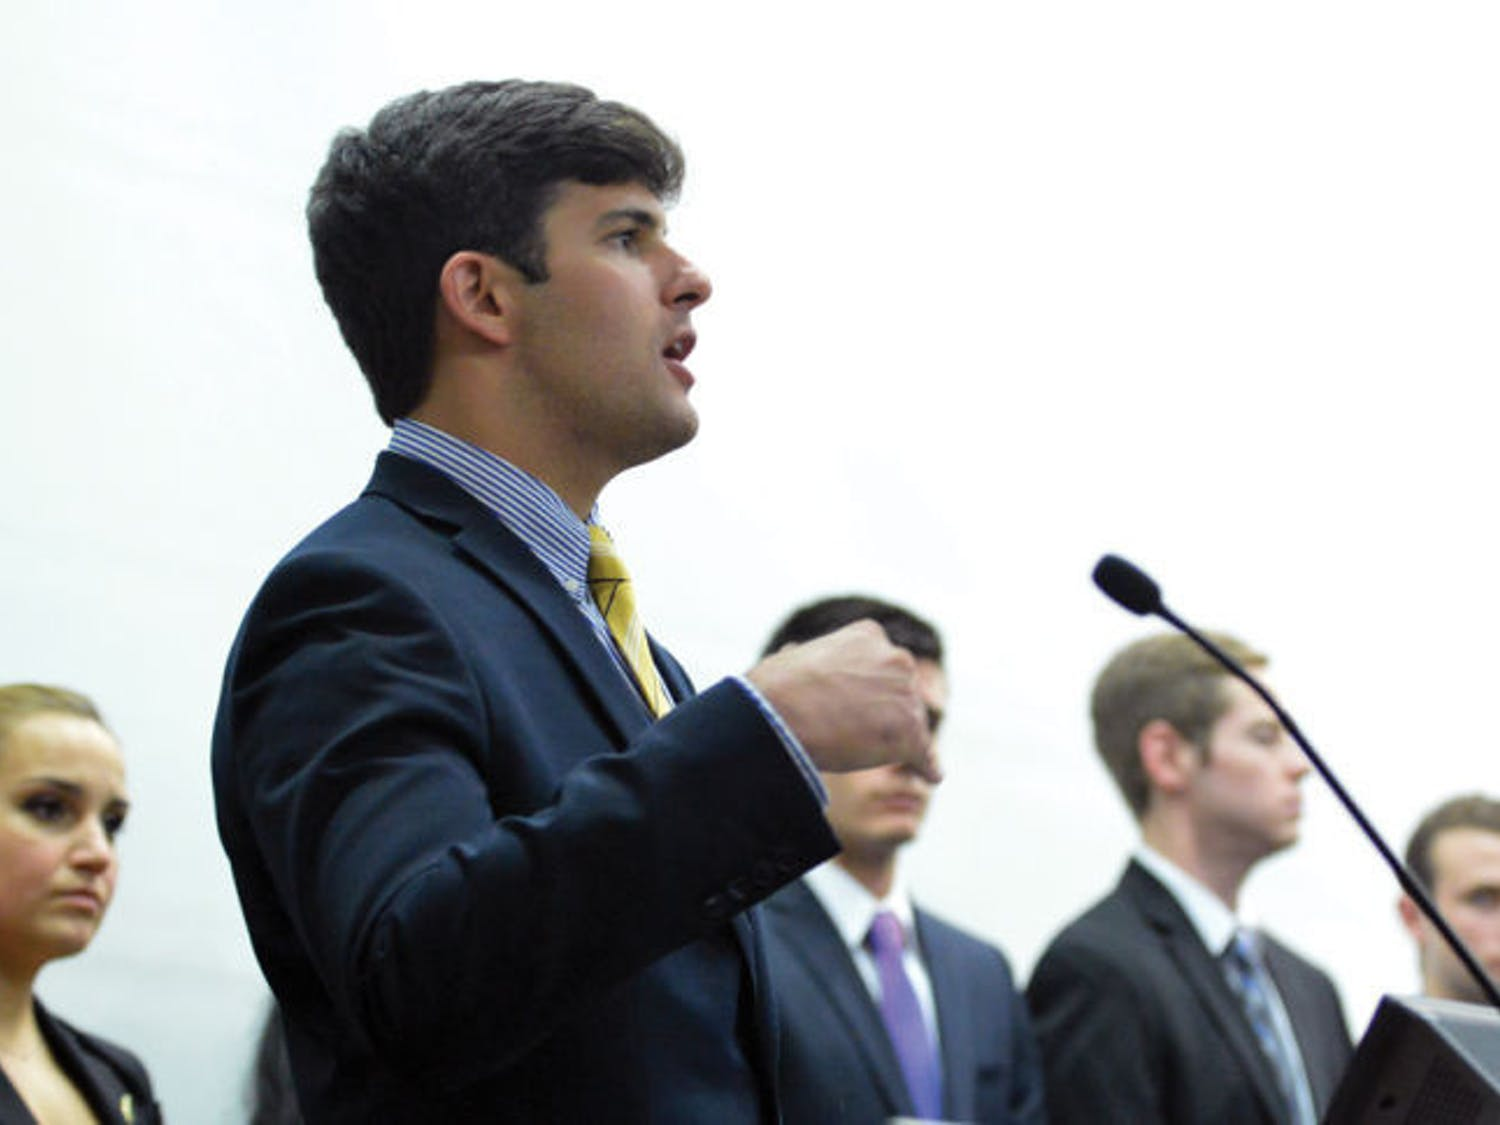 Cory Yeffet speaks about the Student Government executive branch recommendations during a Student Senate meeting on April 22, 2014.